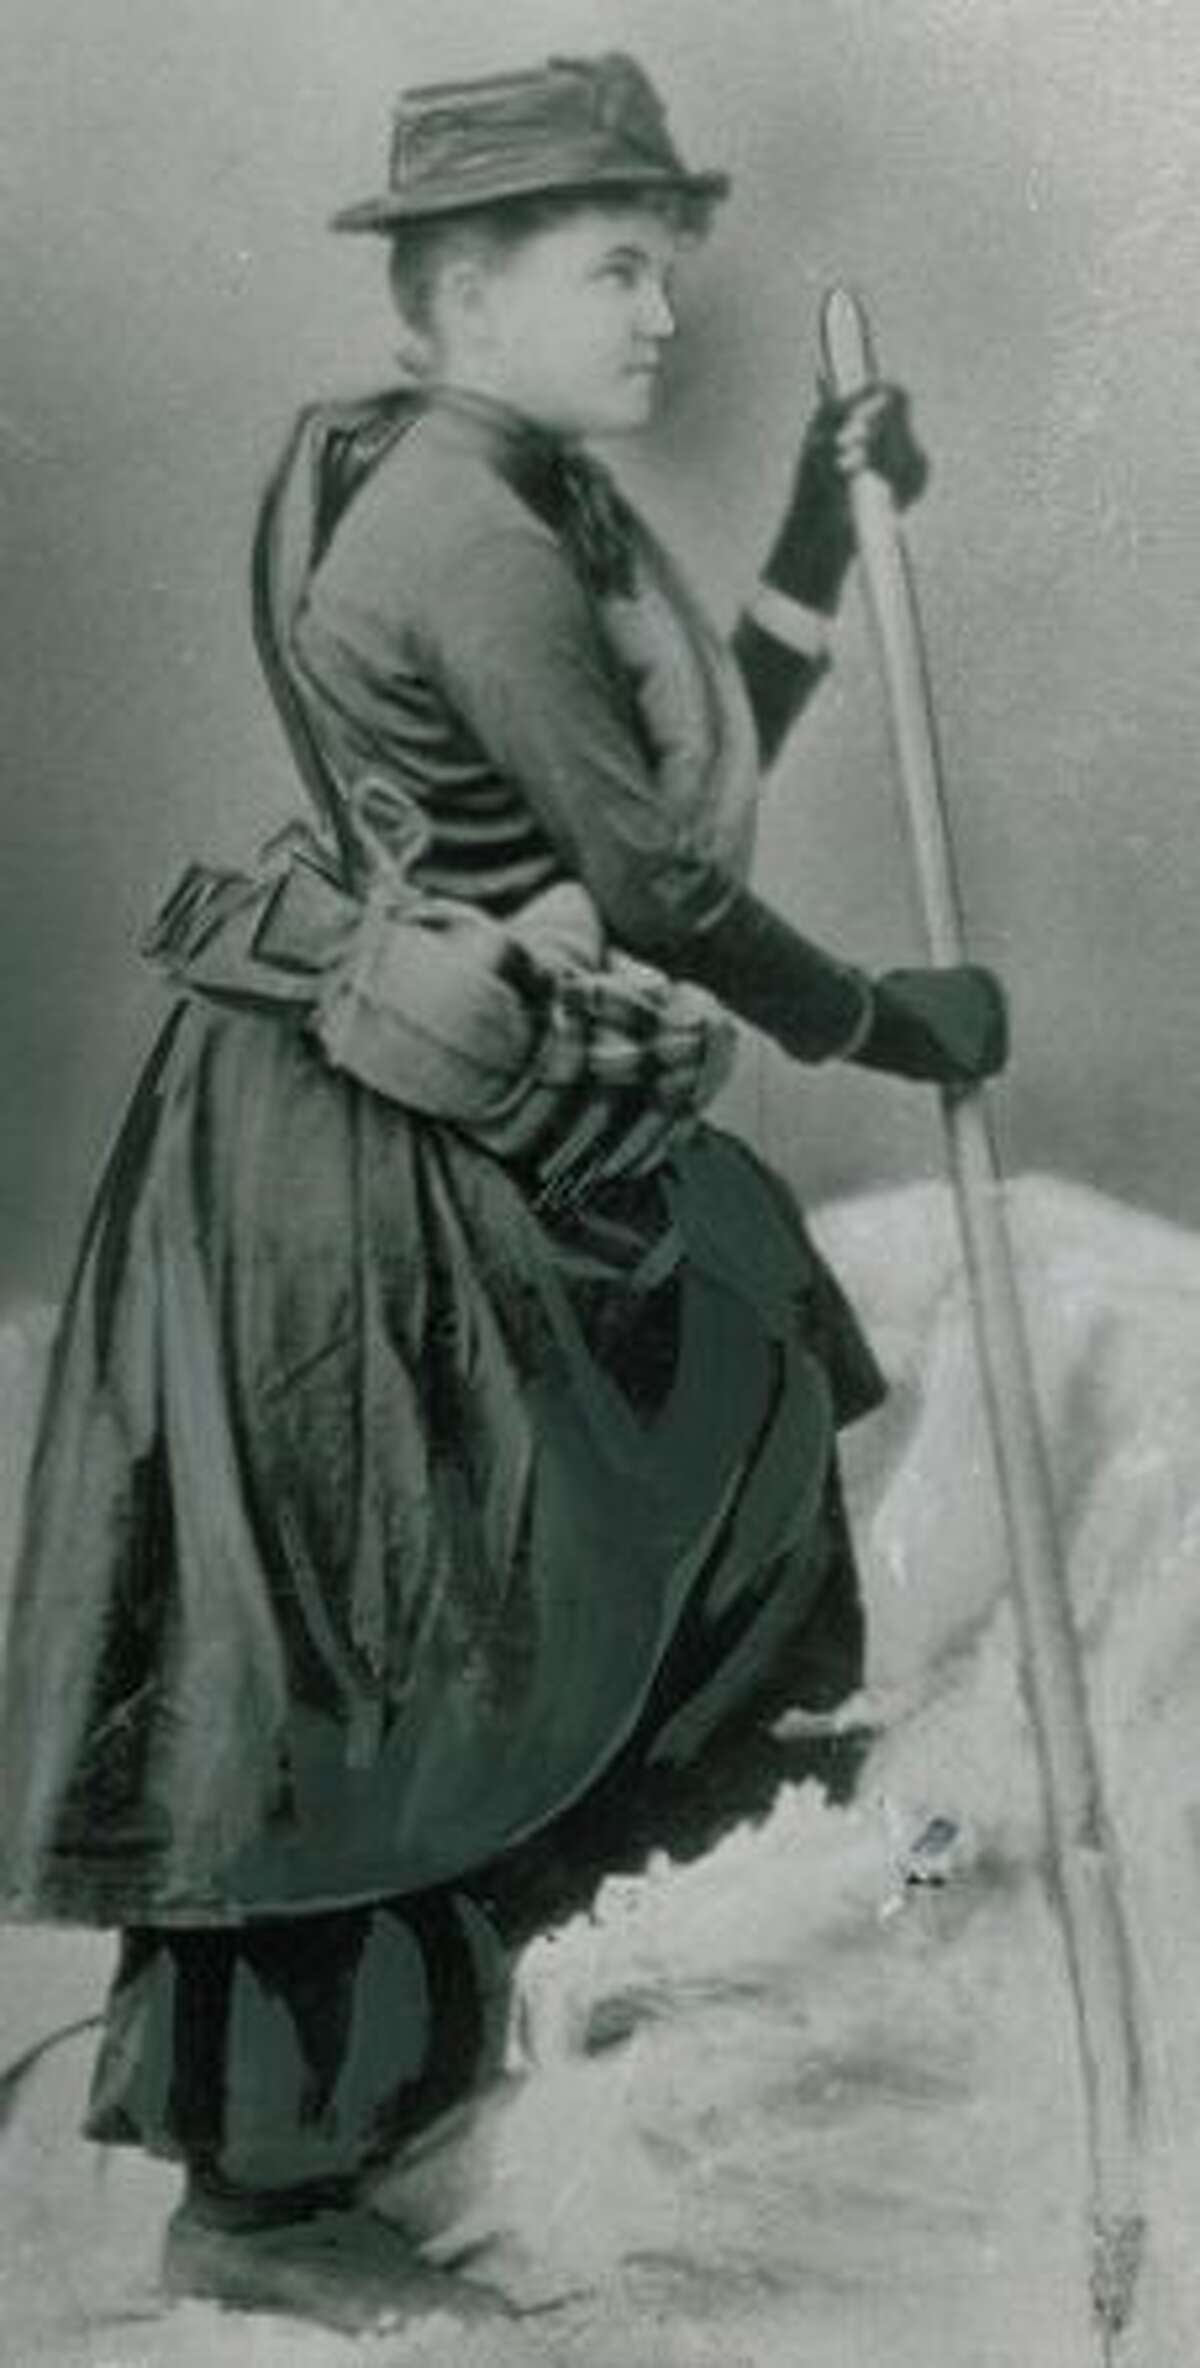 Fay Fuller was the first woman to climb Mount Rainier. She made the climb to the summit in 1890.